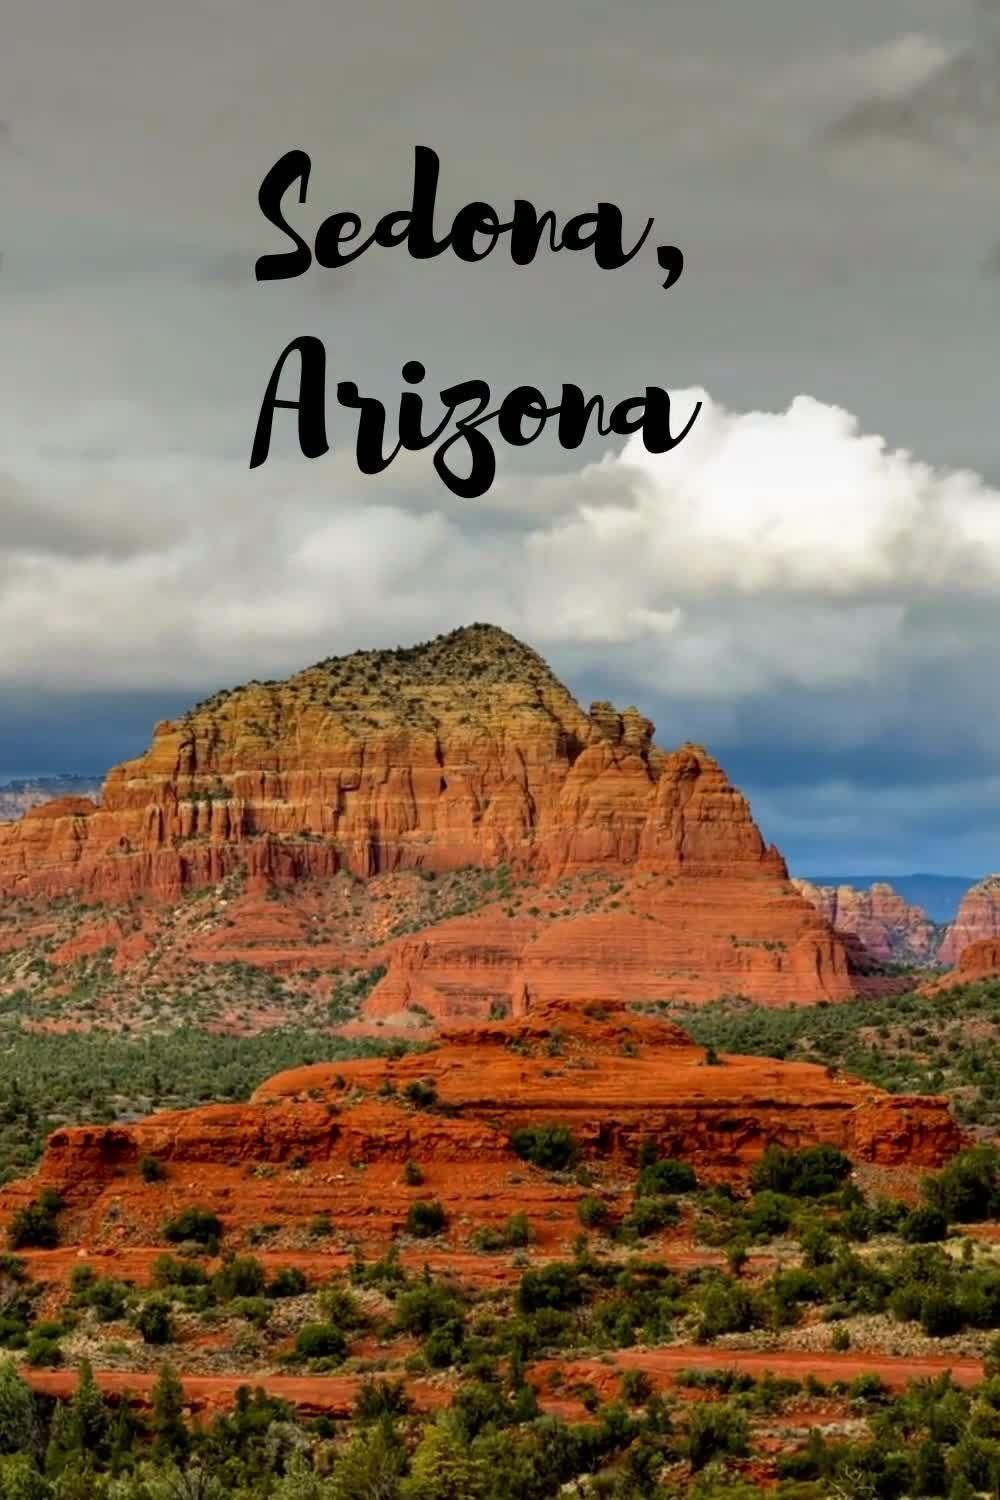 Romantic couples' activities in Sedona, Arizona, including a stay at L'Auberge de Sedona, the stunning retreat on Oak Creek in Sedona, and shopping at Tlaquepaque #sedona #sedonaarizona #romanticthingstodoinsedona